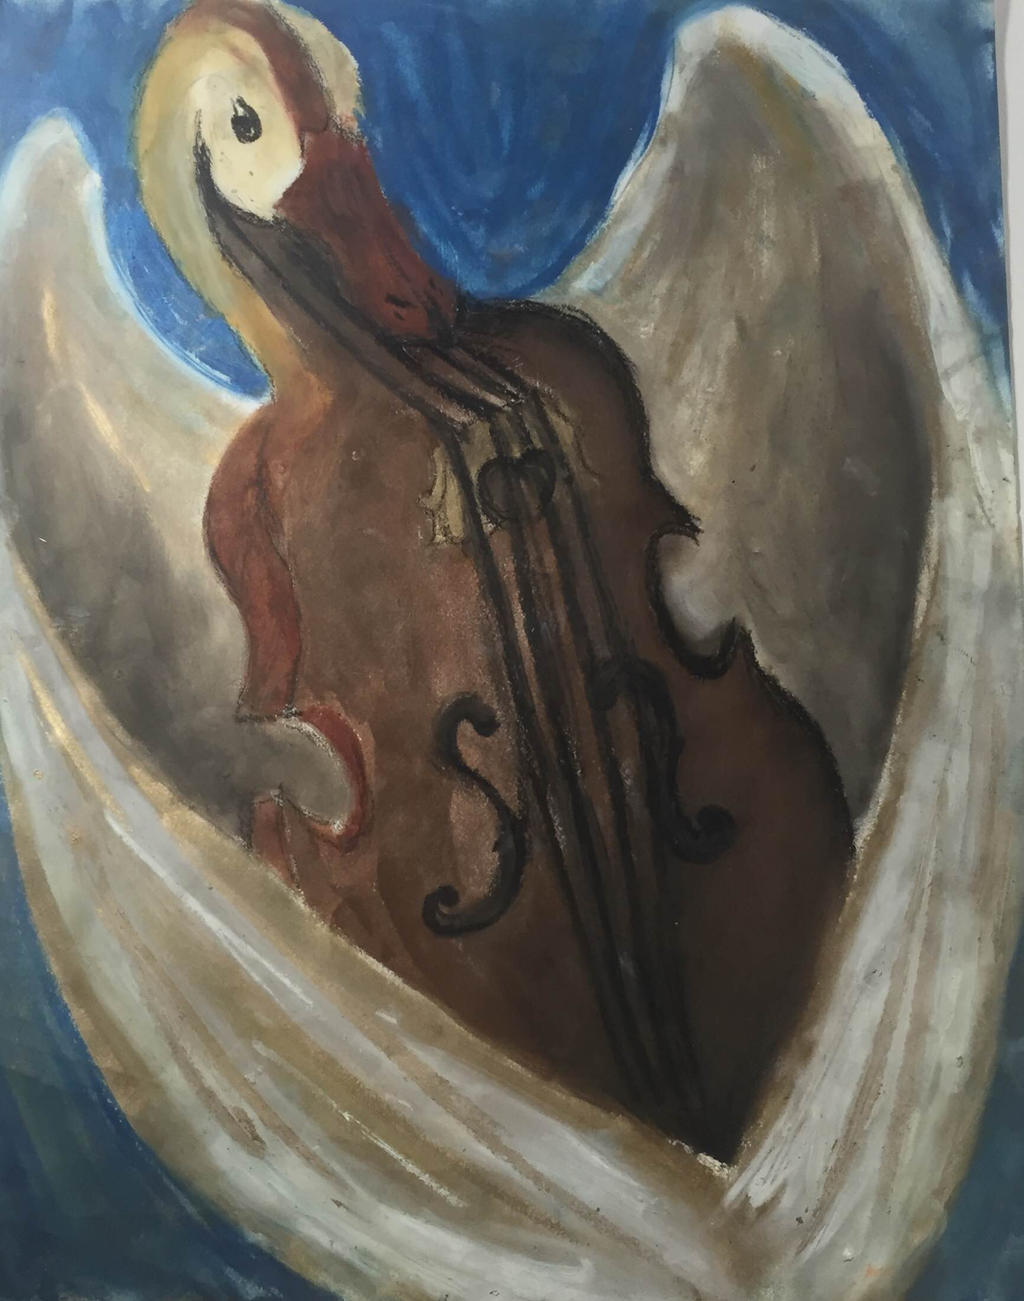 Cello bird by sirkles